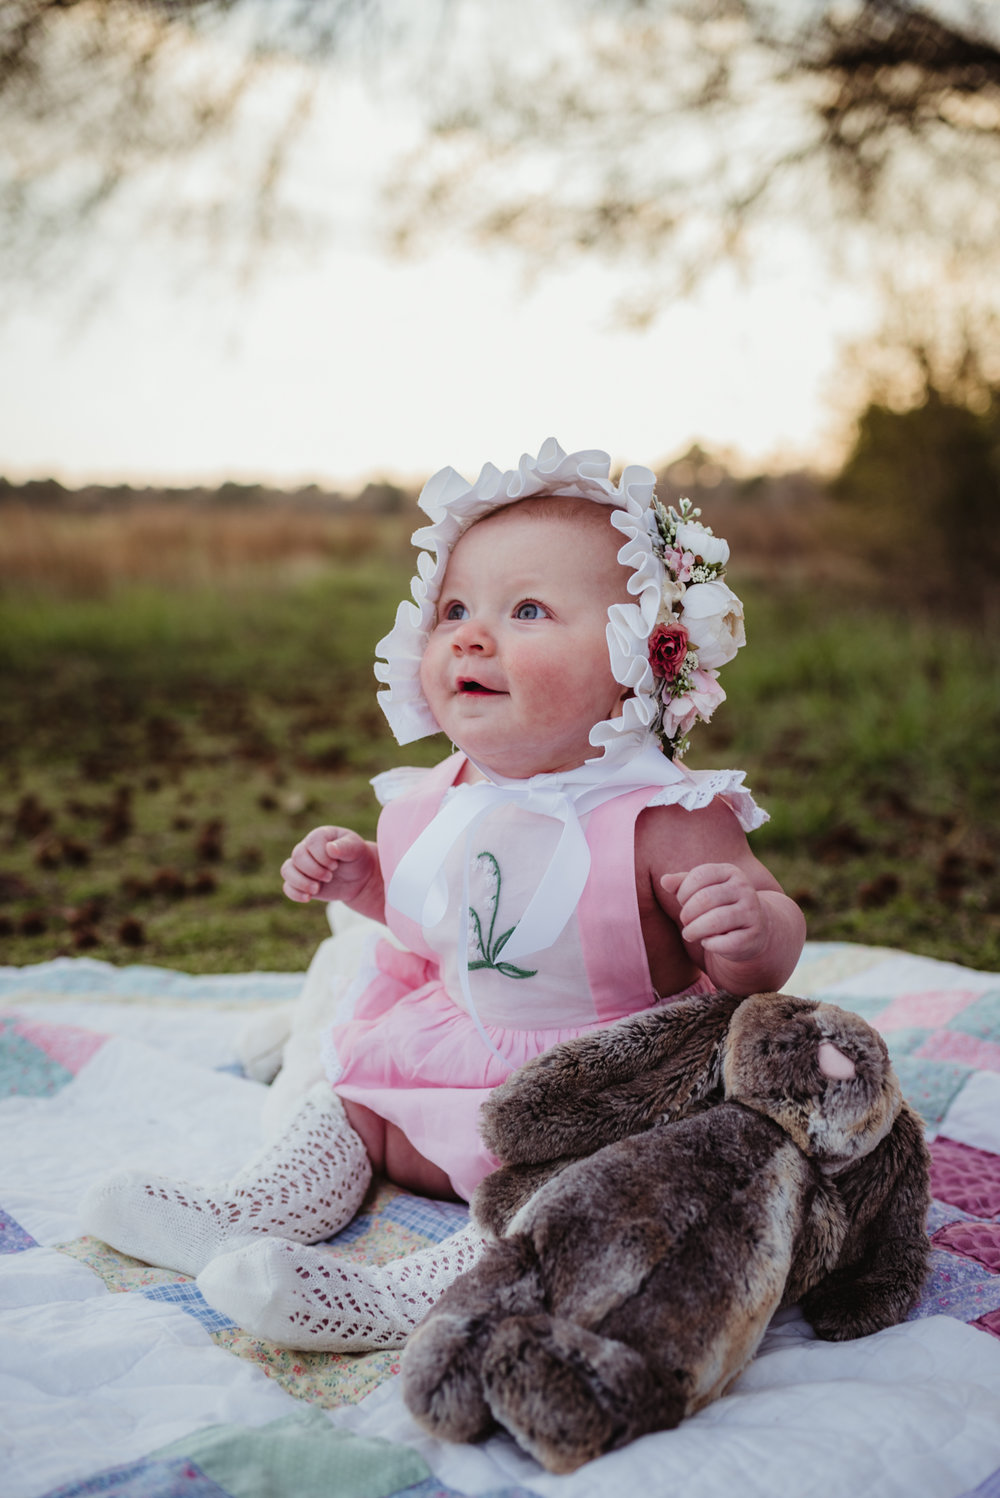 The baby poses on a family blanket with her Easter bonnet on at sunset during their family photos with Rose Trail Images at Horseshoe Farm Park in Wake Forest, NC.